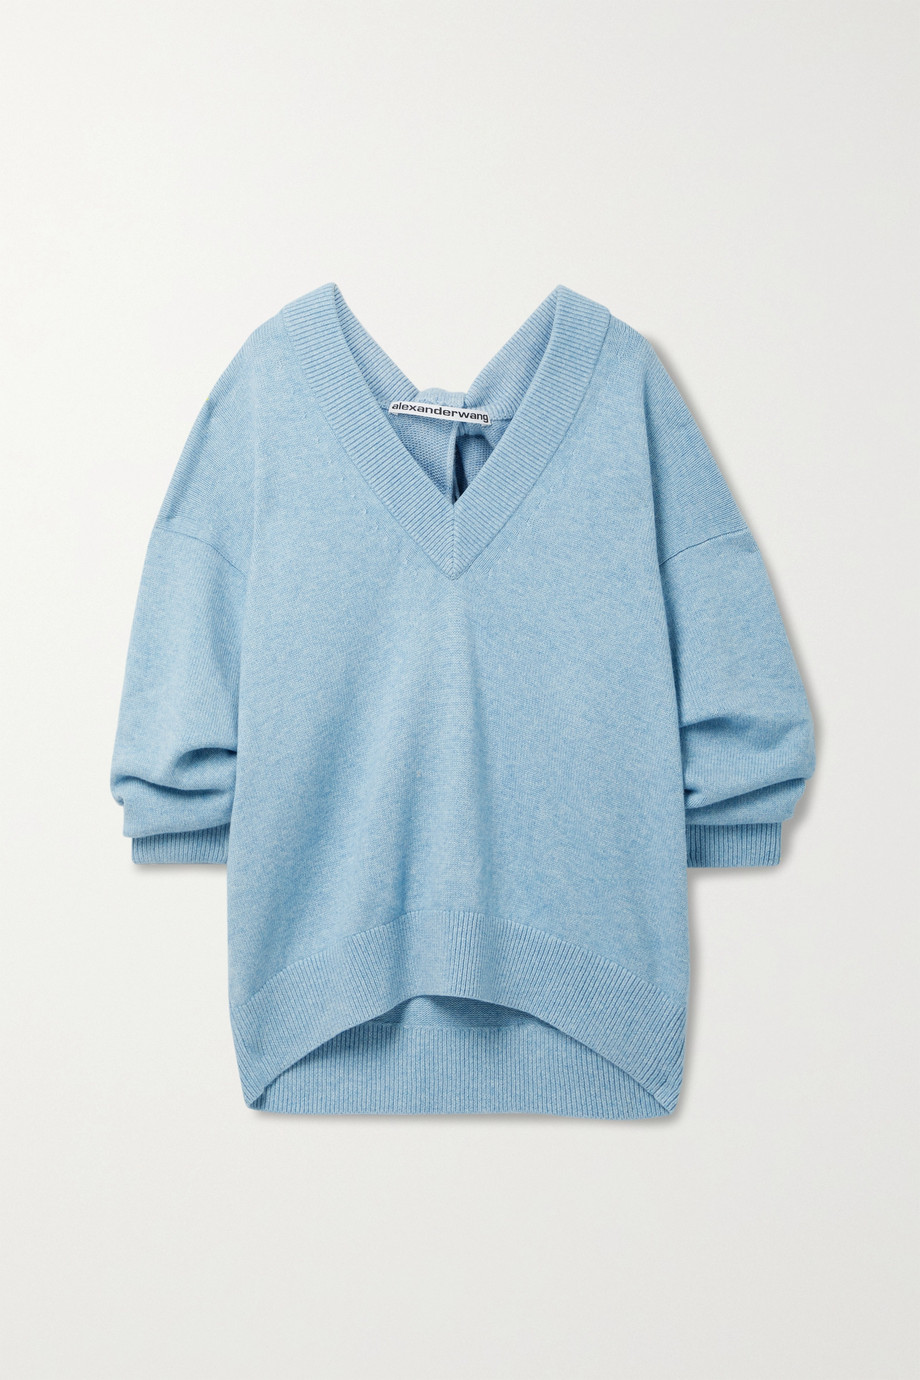 Alexander Wang Oversized twisted knitted sweater